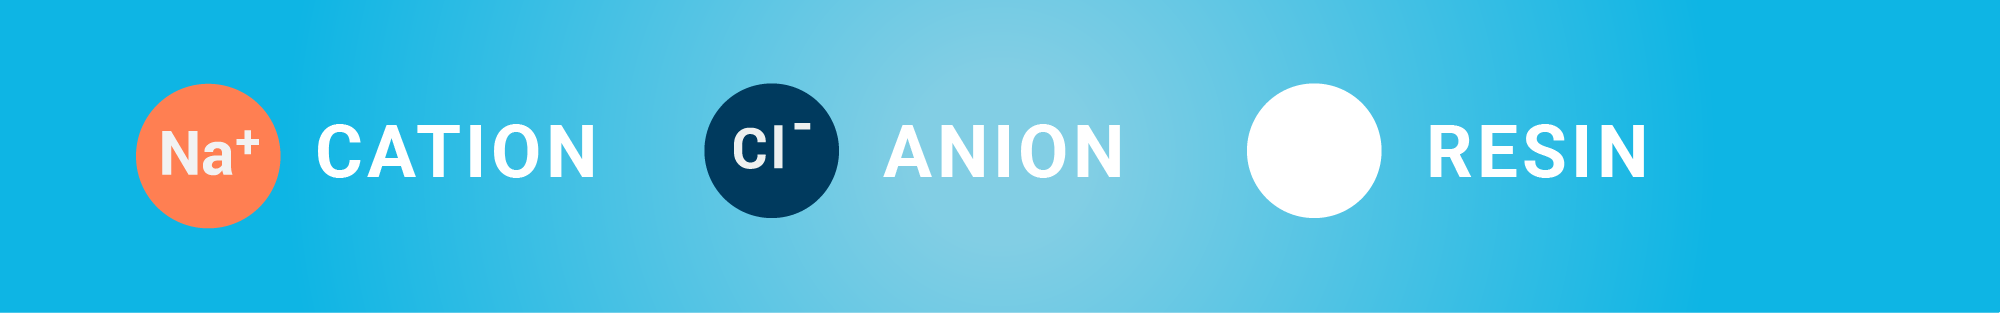 Cation versus Anion